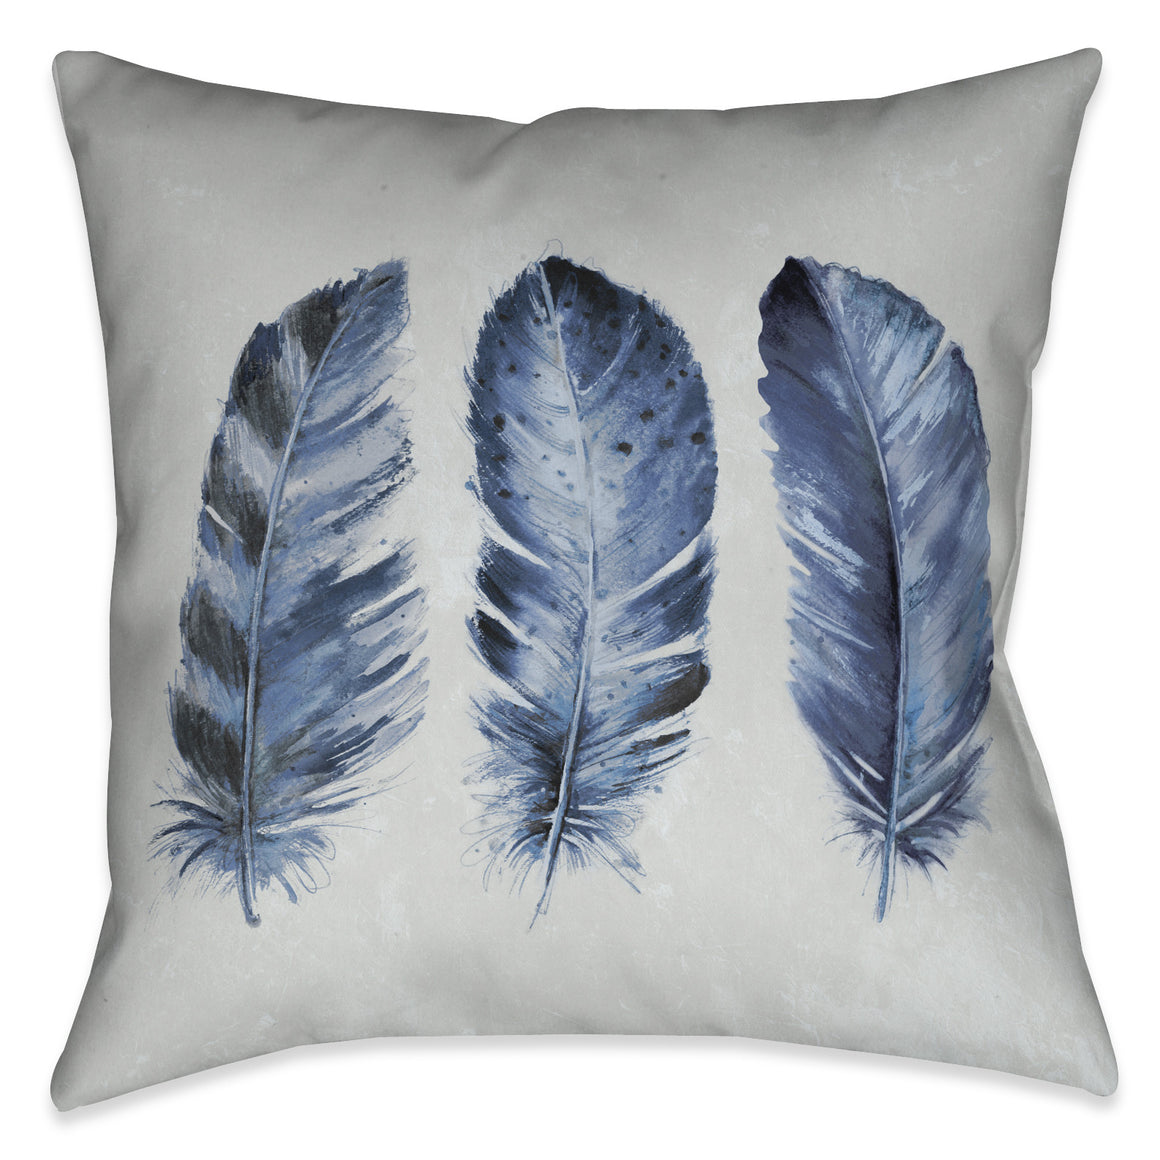 Indigo Feathers II Indoor Decorative Pillow